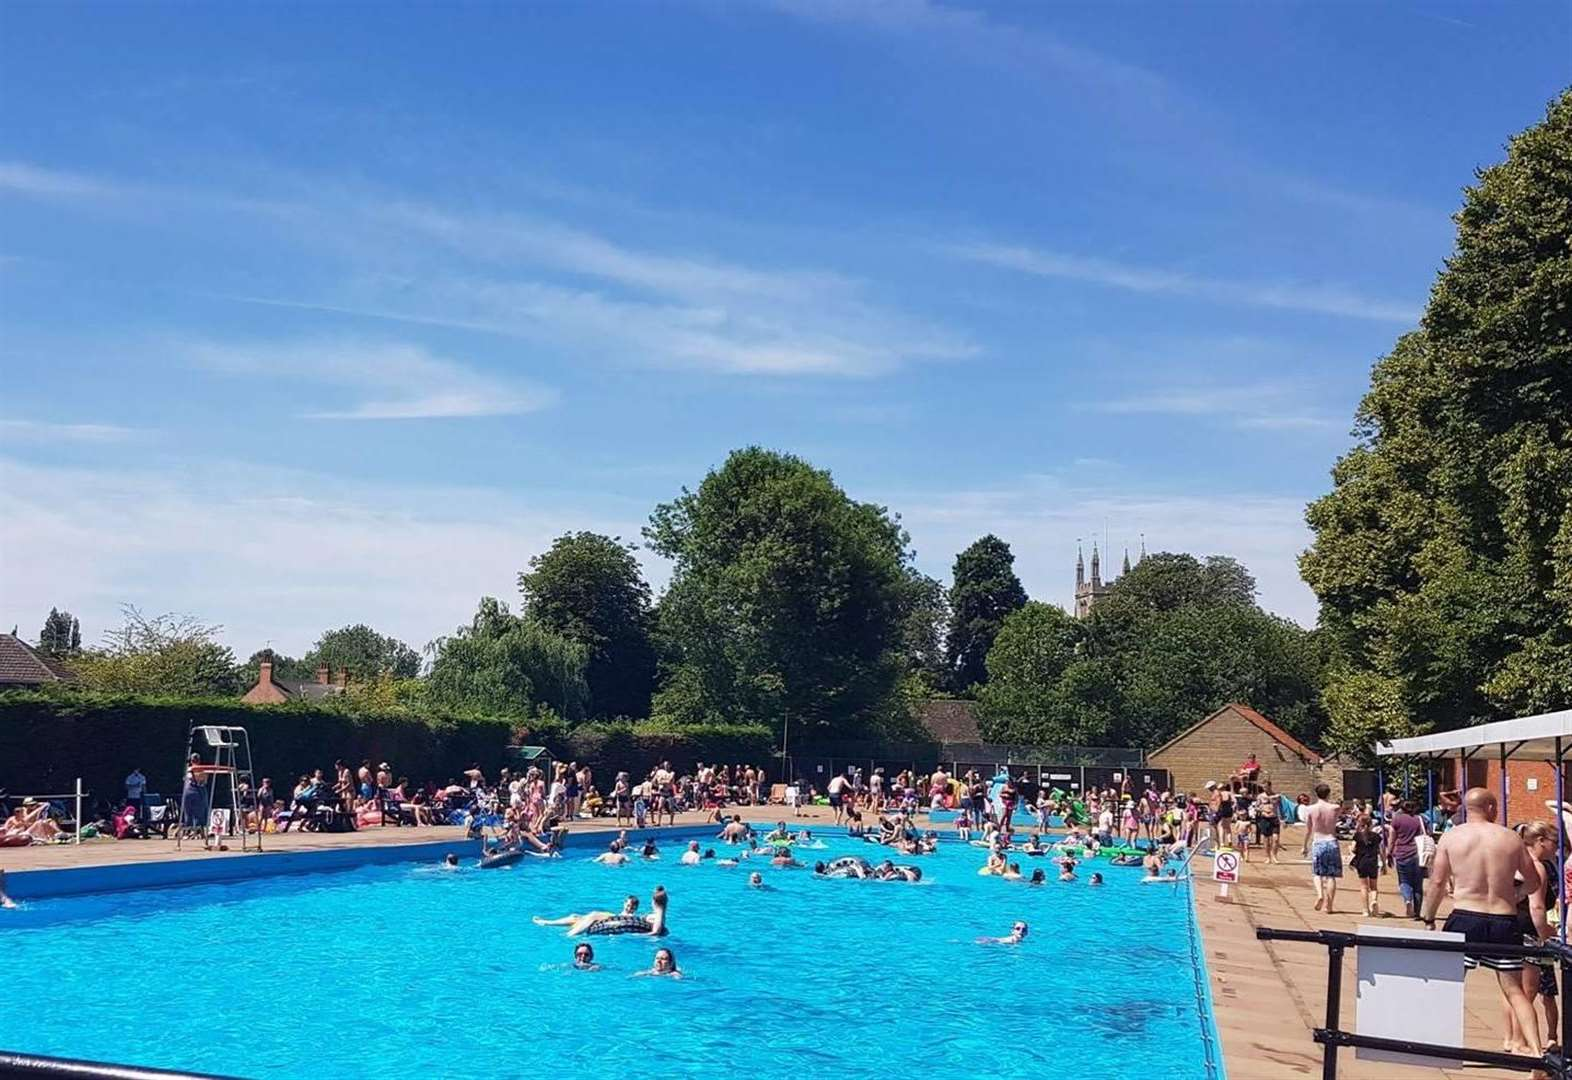 Bourne Outdoor Pool heatwave record joy